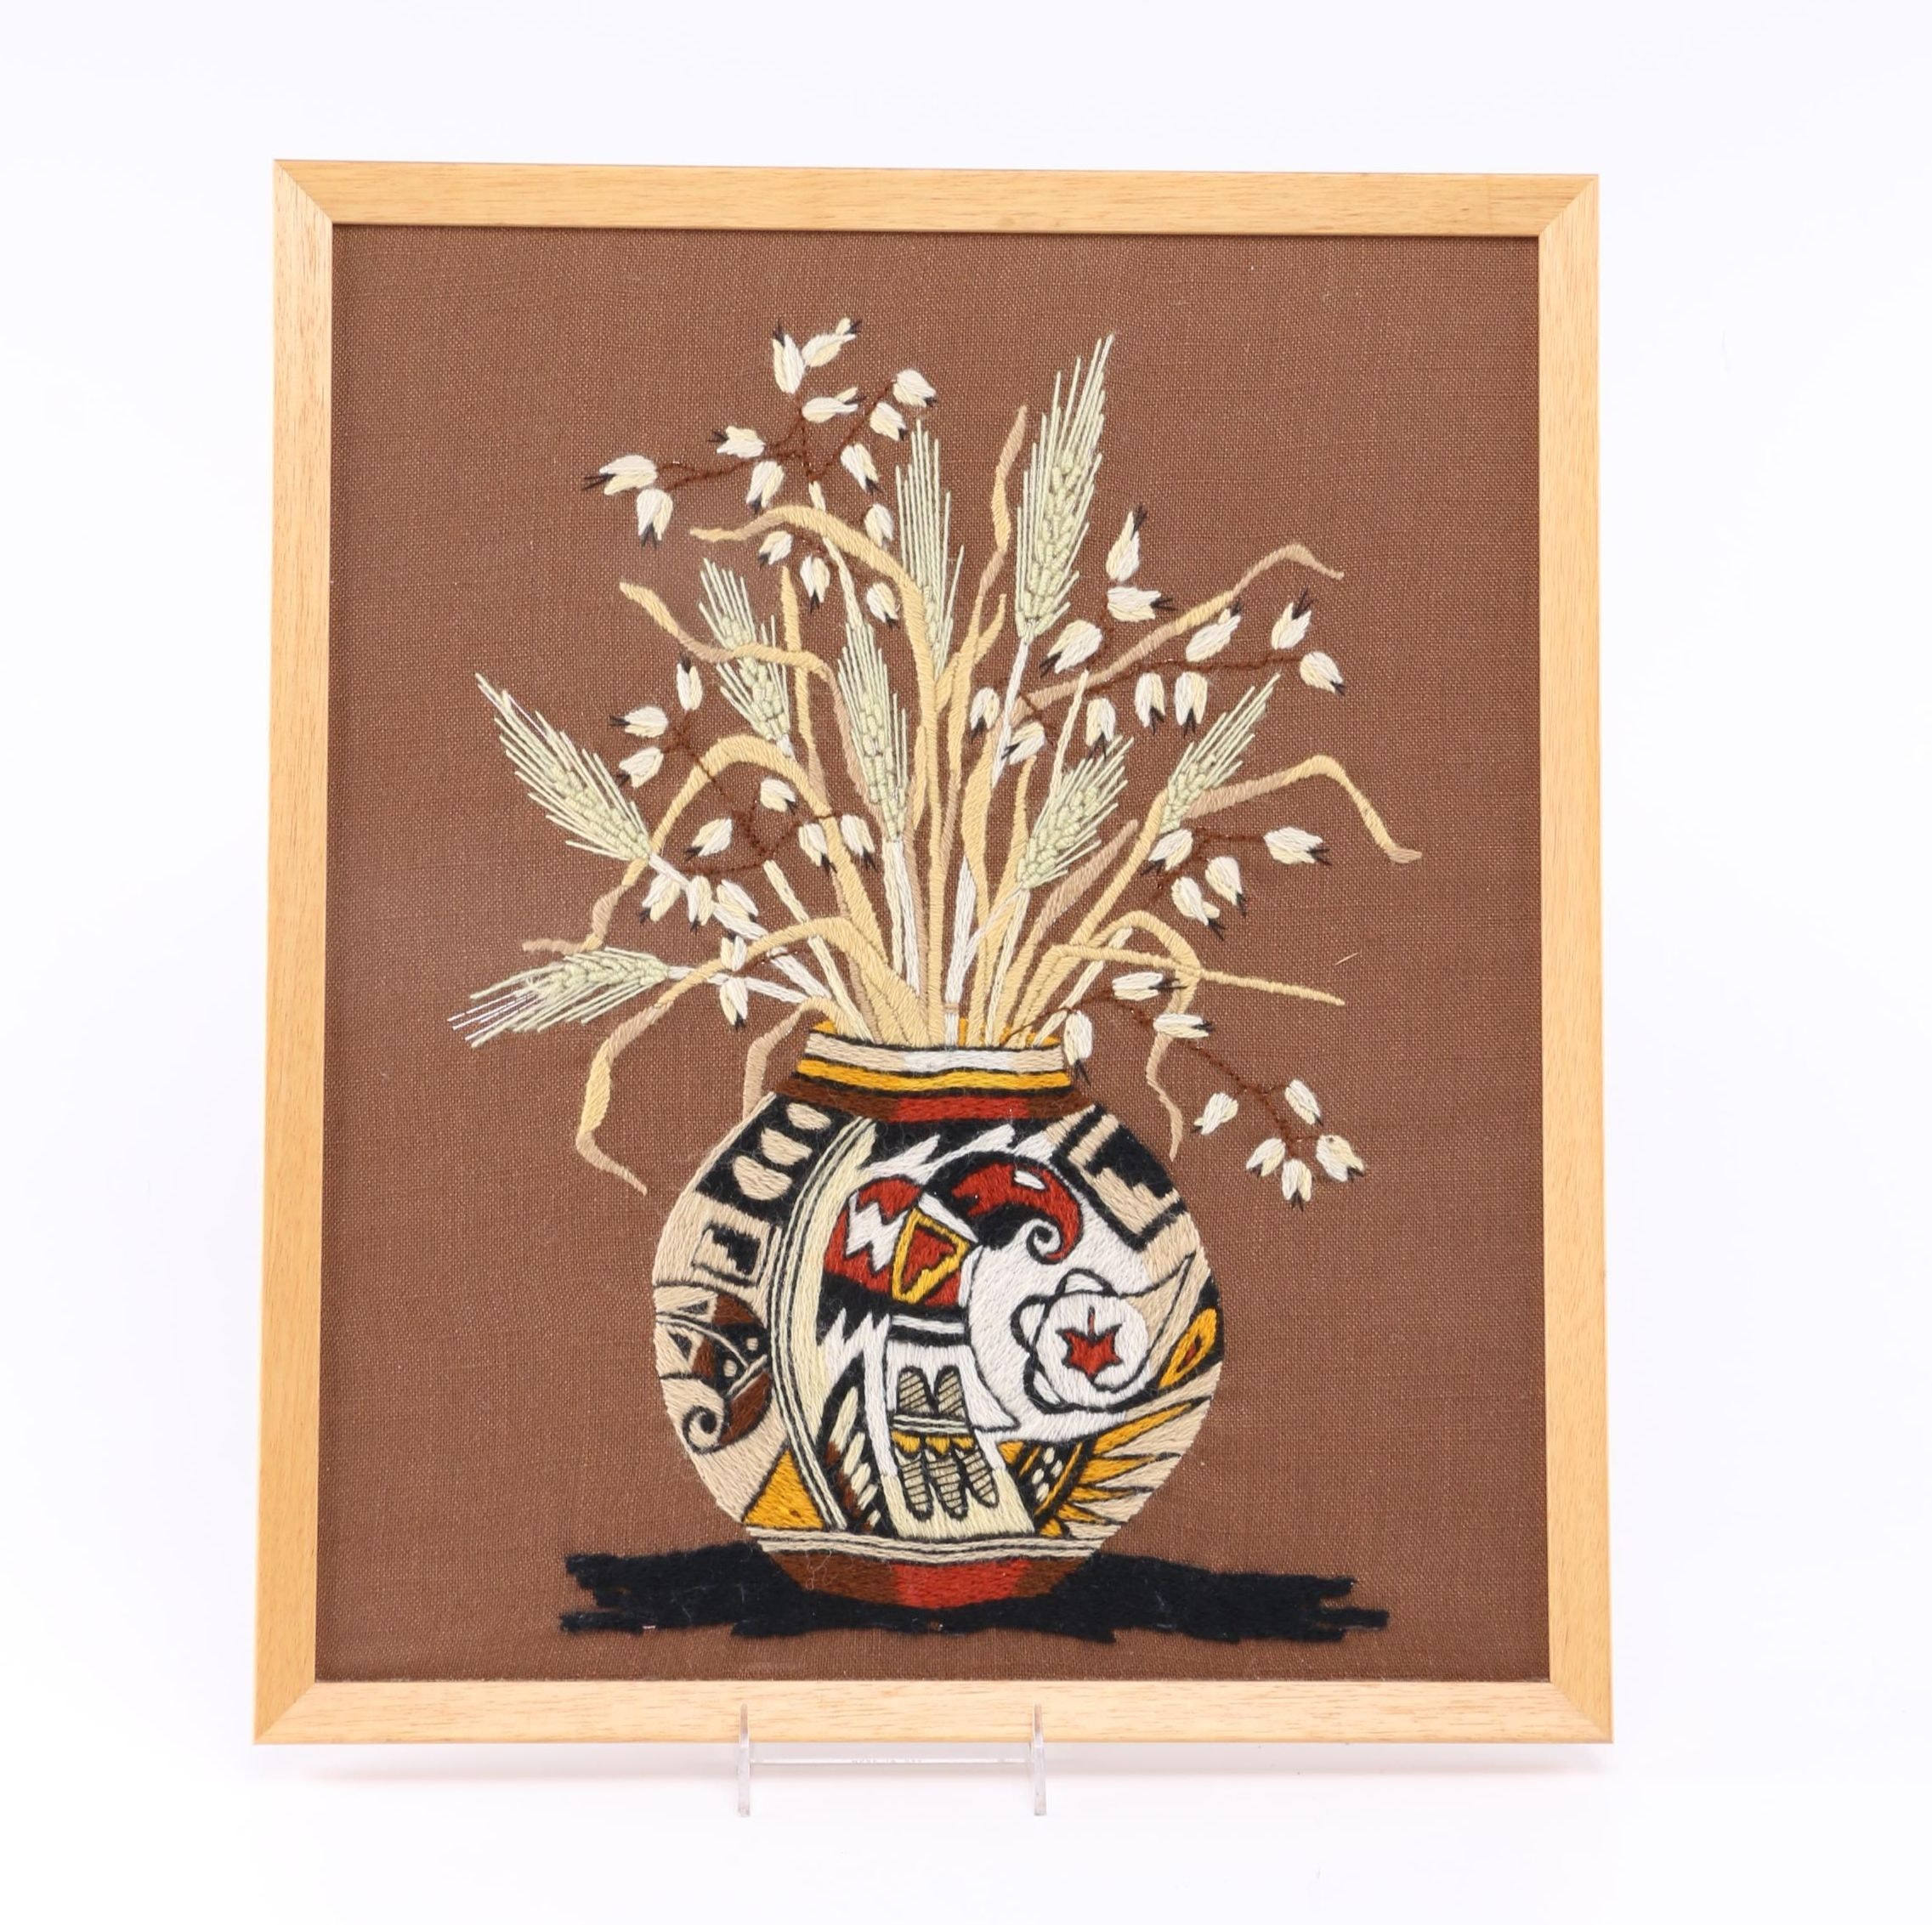 Framed Native American Style Stitched Textile